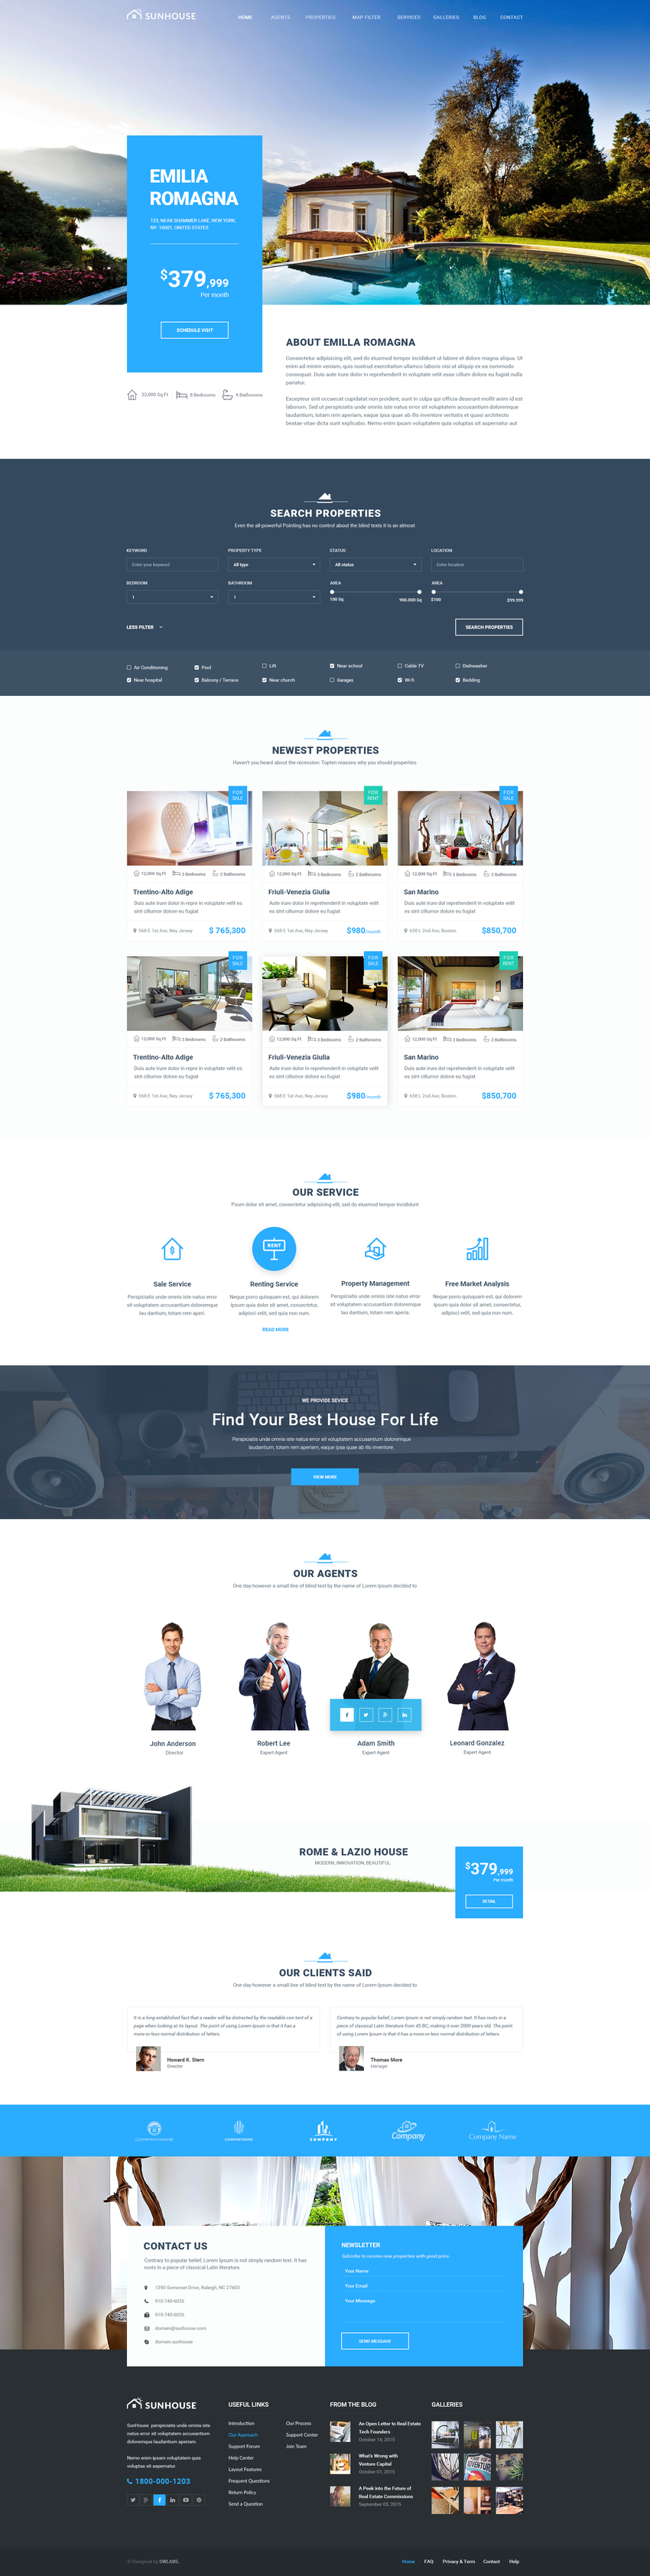 sunhouse-real-estate-psd-template